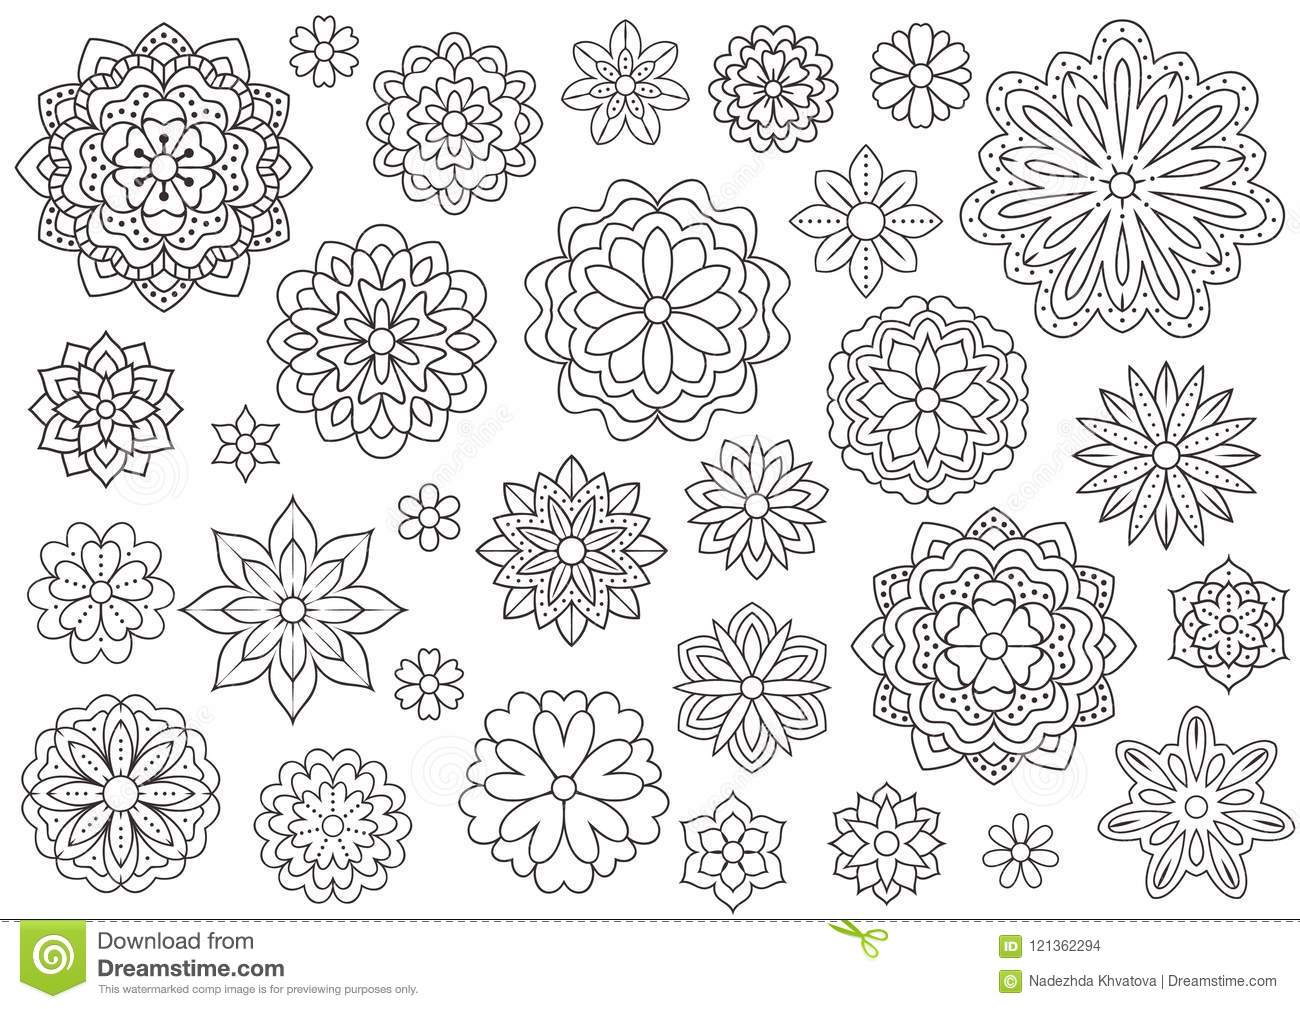 Outline Doodle Flowers For Adult Coloring Book. Beautiful Floral ...